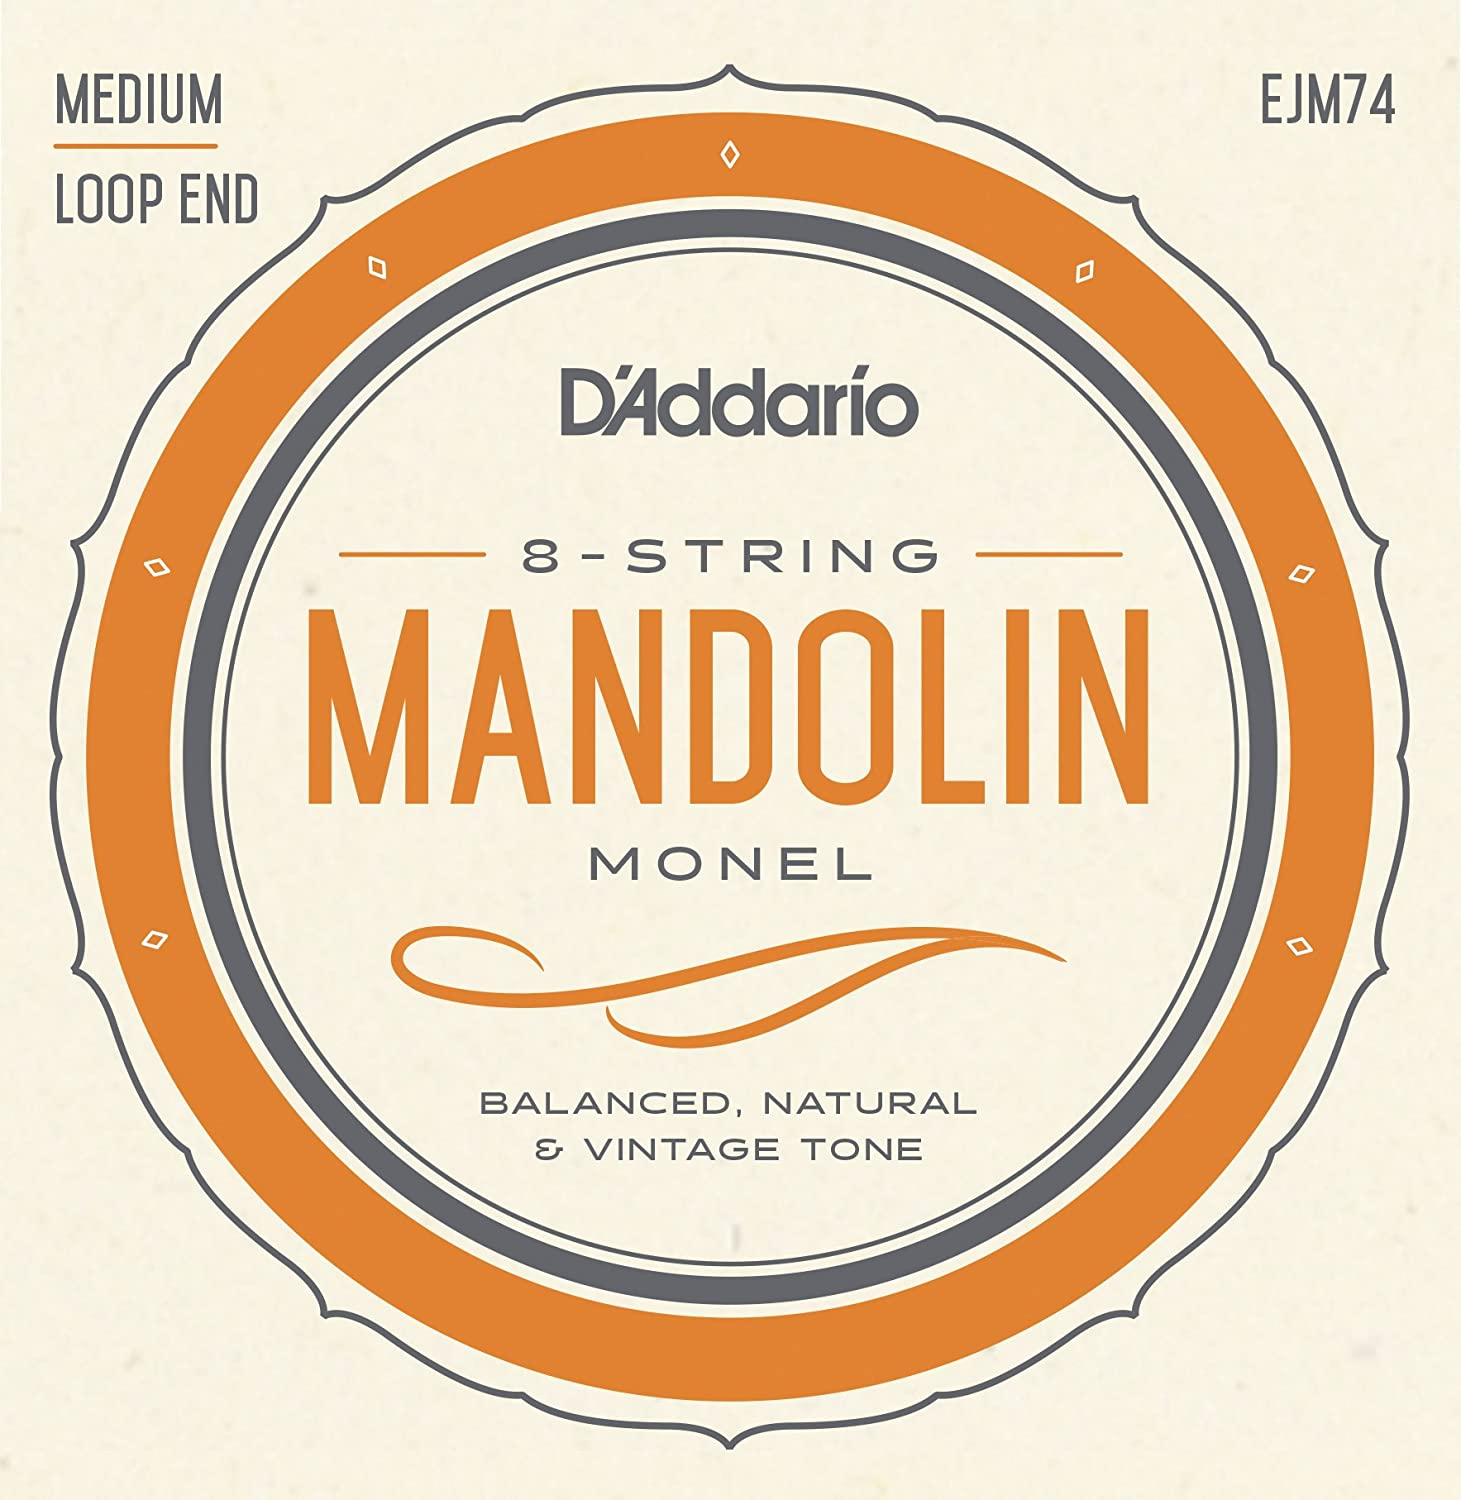 D'Addario Mandolin Monel Set, Medium, 11-40 (EJM74) D'Addario &Co. Inc